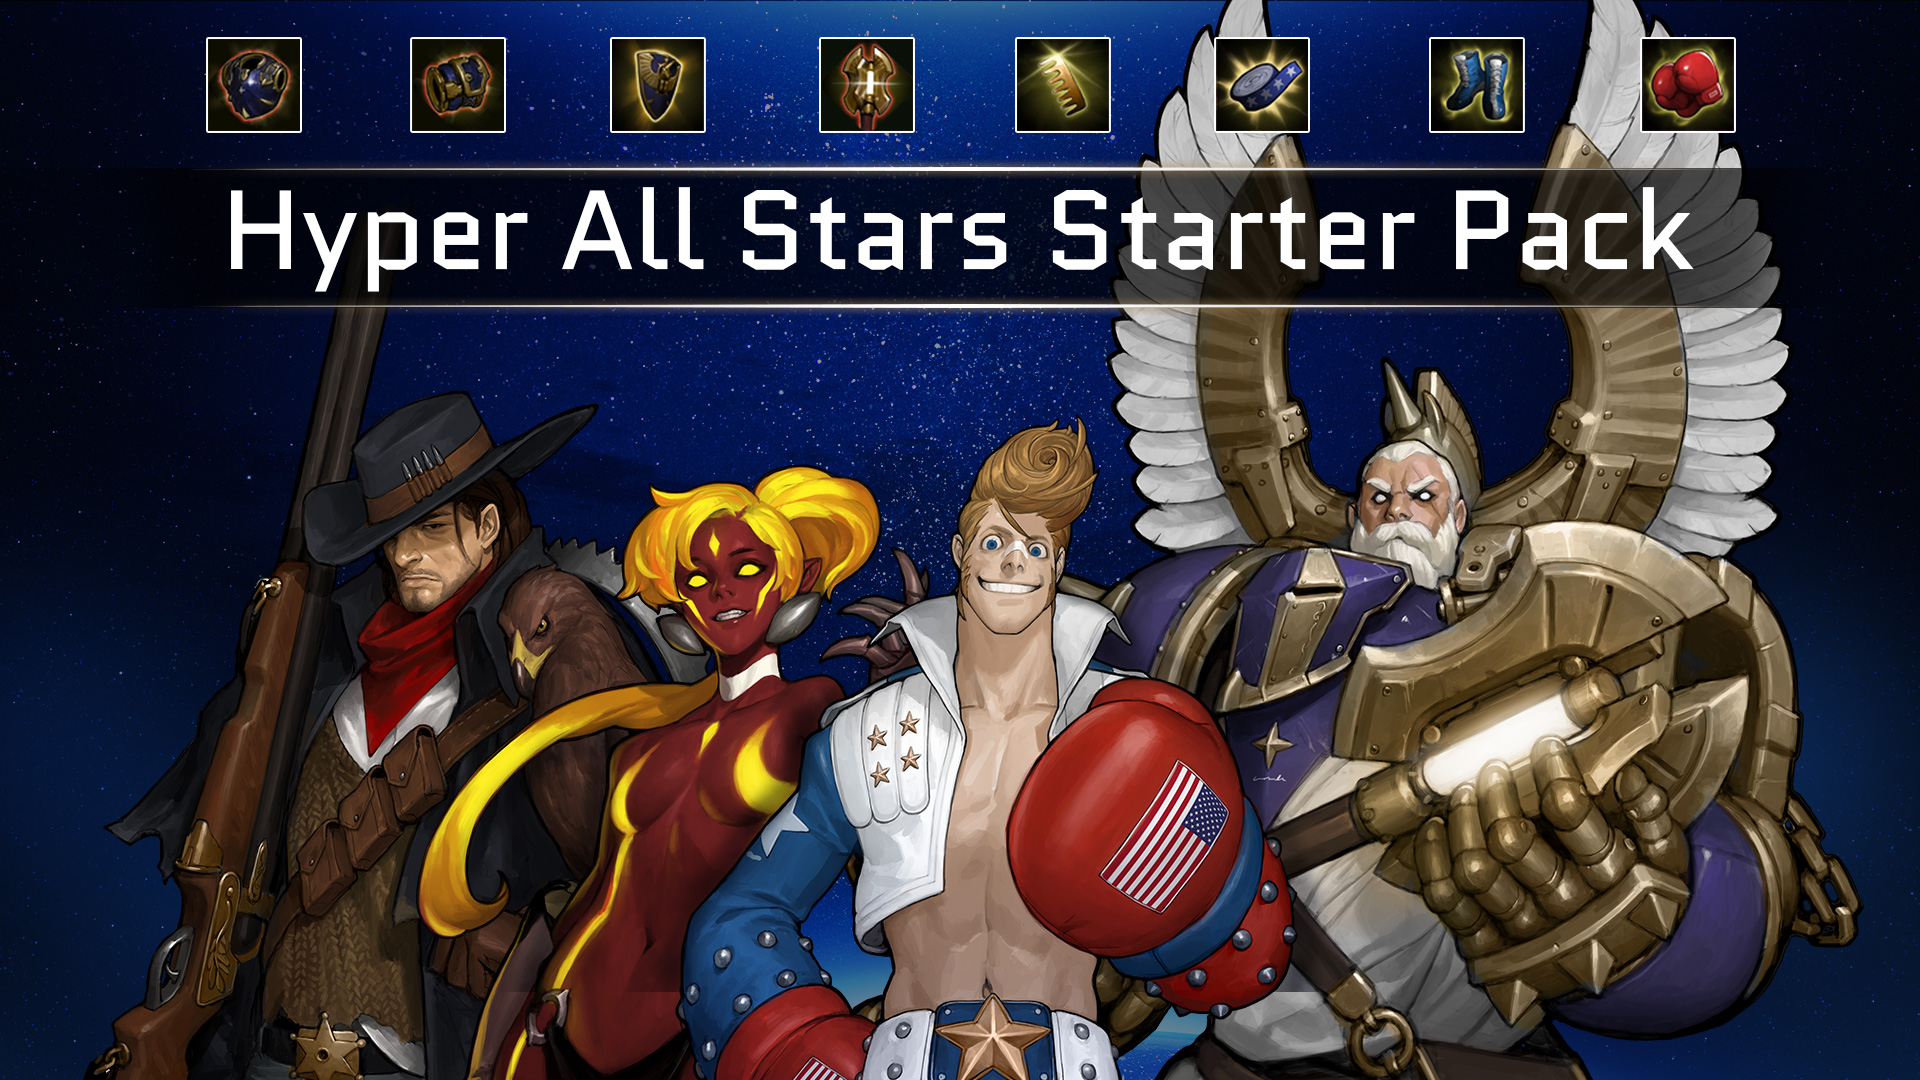 Hyper Universe: Hyper All Stars Starter Pack 2018 pc game Img-4